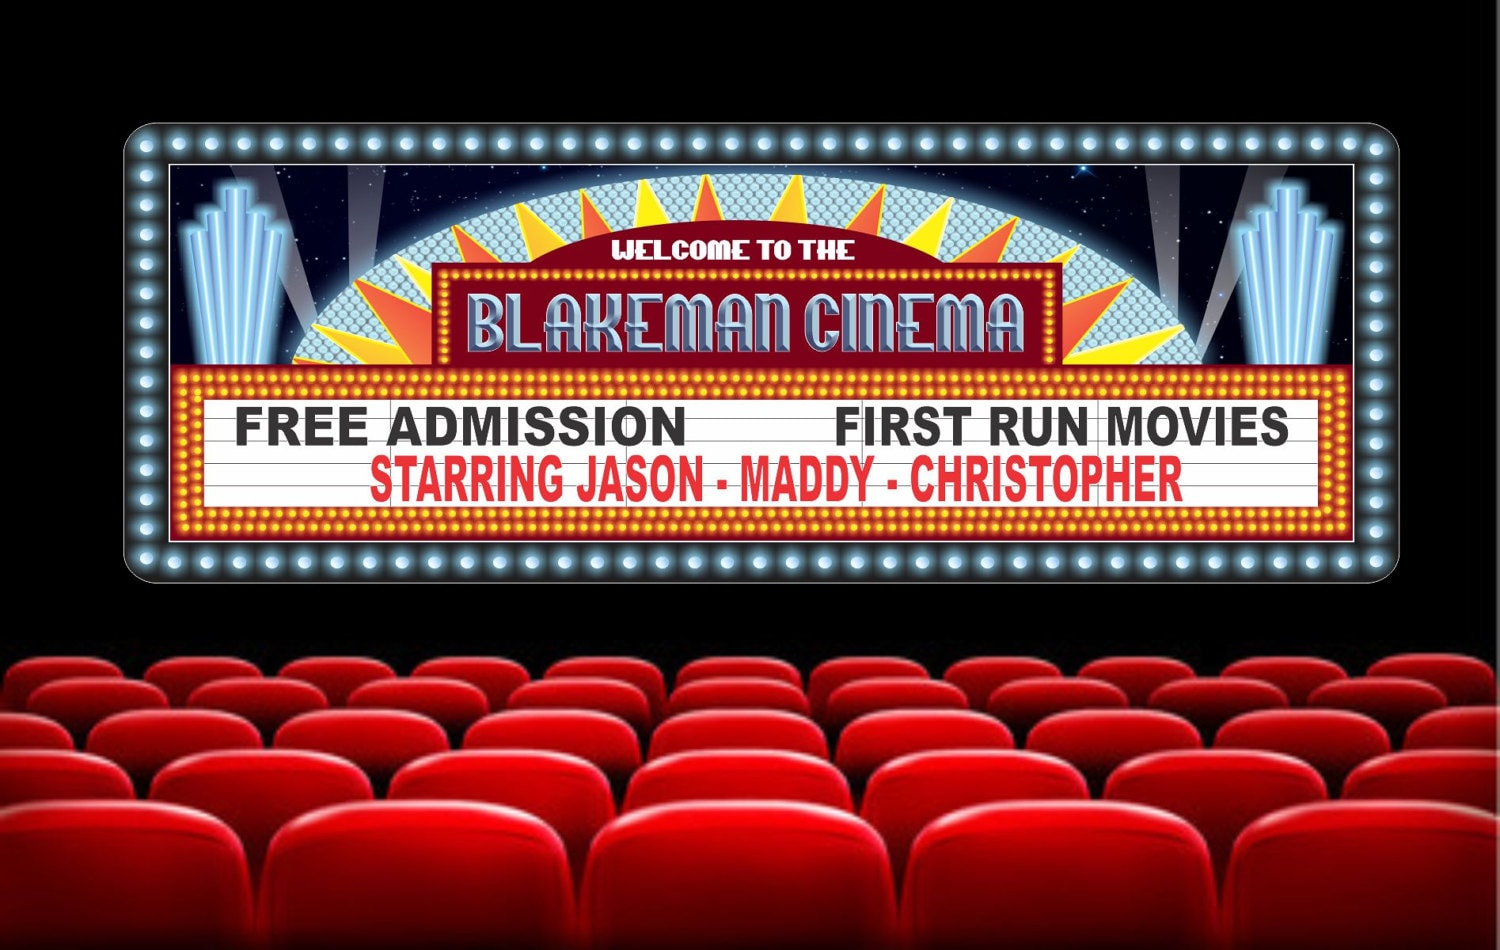 Personalized Home Cinema Sign With Vintage Movie Theater. Fictitious Business Name Pa Tko Boxing Club. Merchant Finance Company Hyundai Knoxville Tn. All Inclusive Resort Ocho Rios Jamaica. 360 Degree Feedback Assessment. Bail Bonds Philadelphia Offsite Backup Service. Debt Collection Attorney Fees. Online Debt Consolidation Loans. Pa Online Charter School Register To Domain